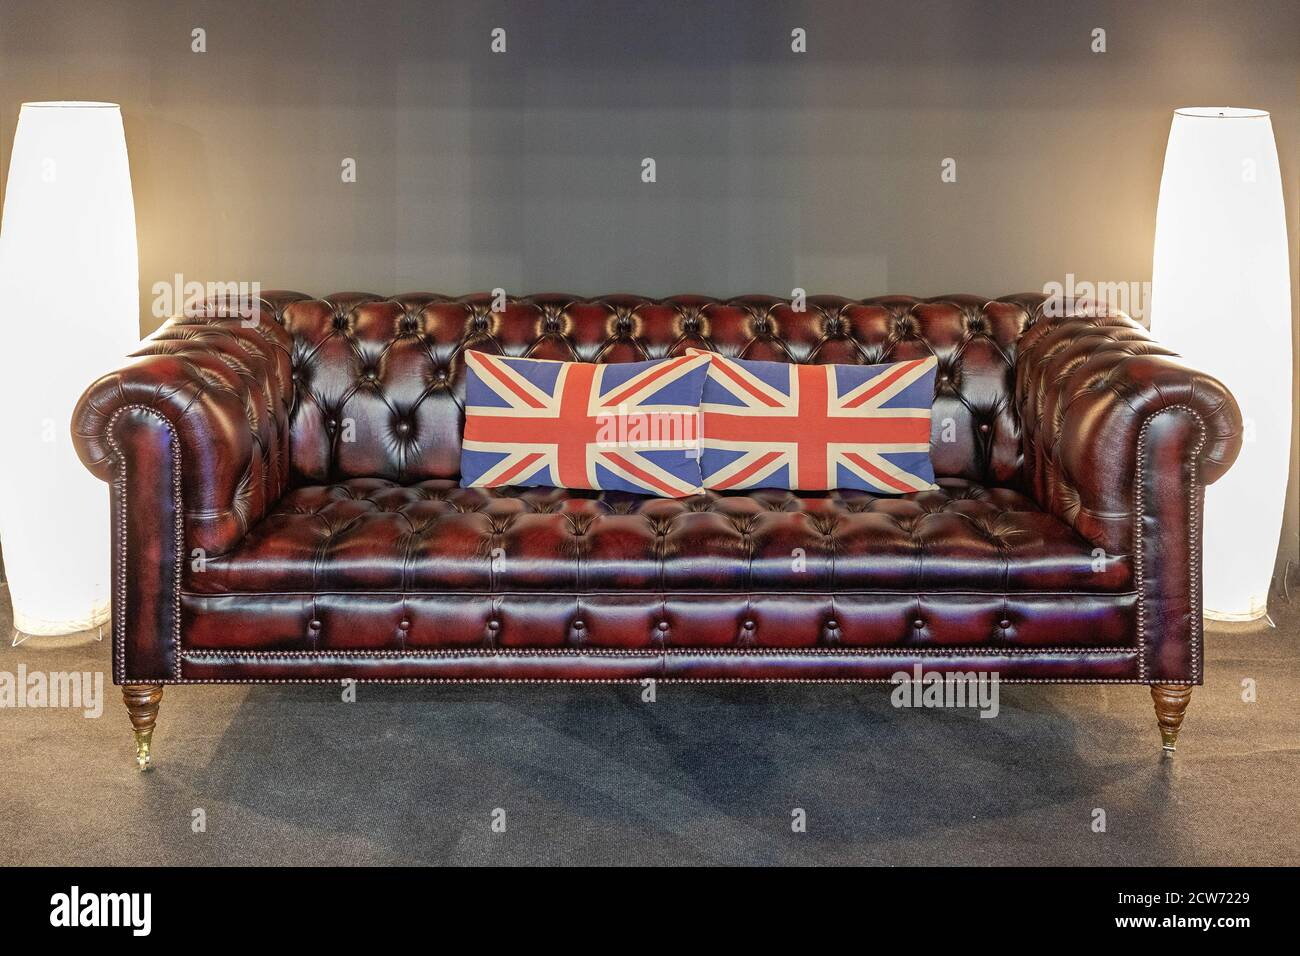 Chesterfield Sofa High Resolution Stock Photography And Images Alamy